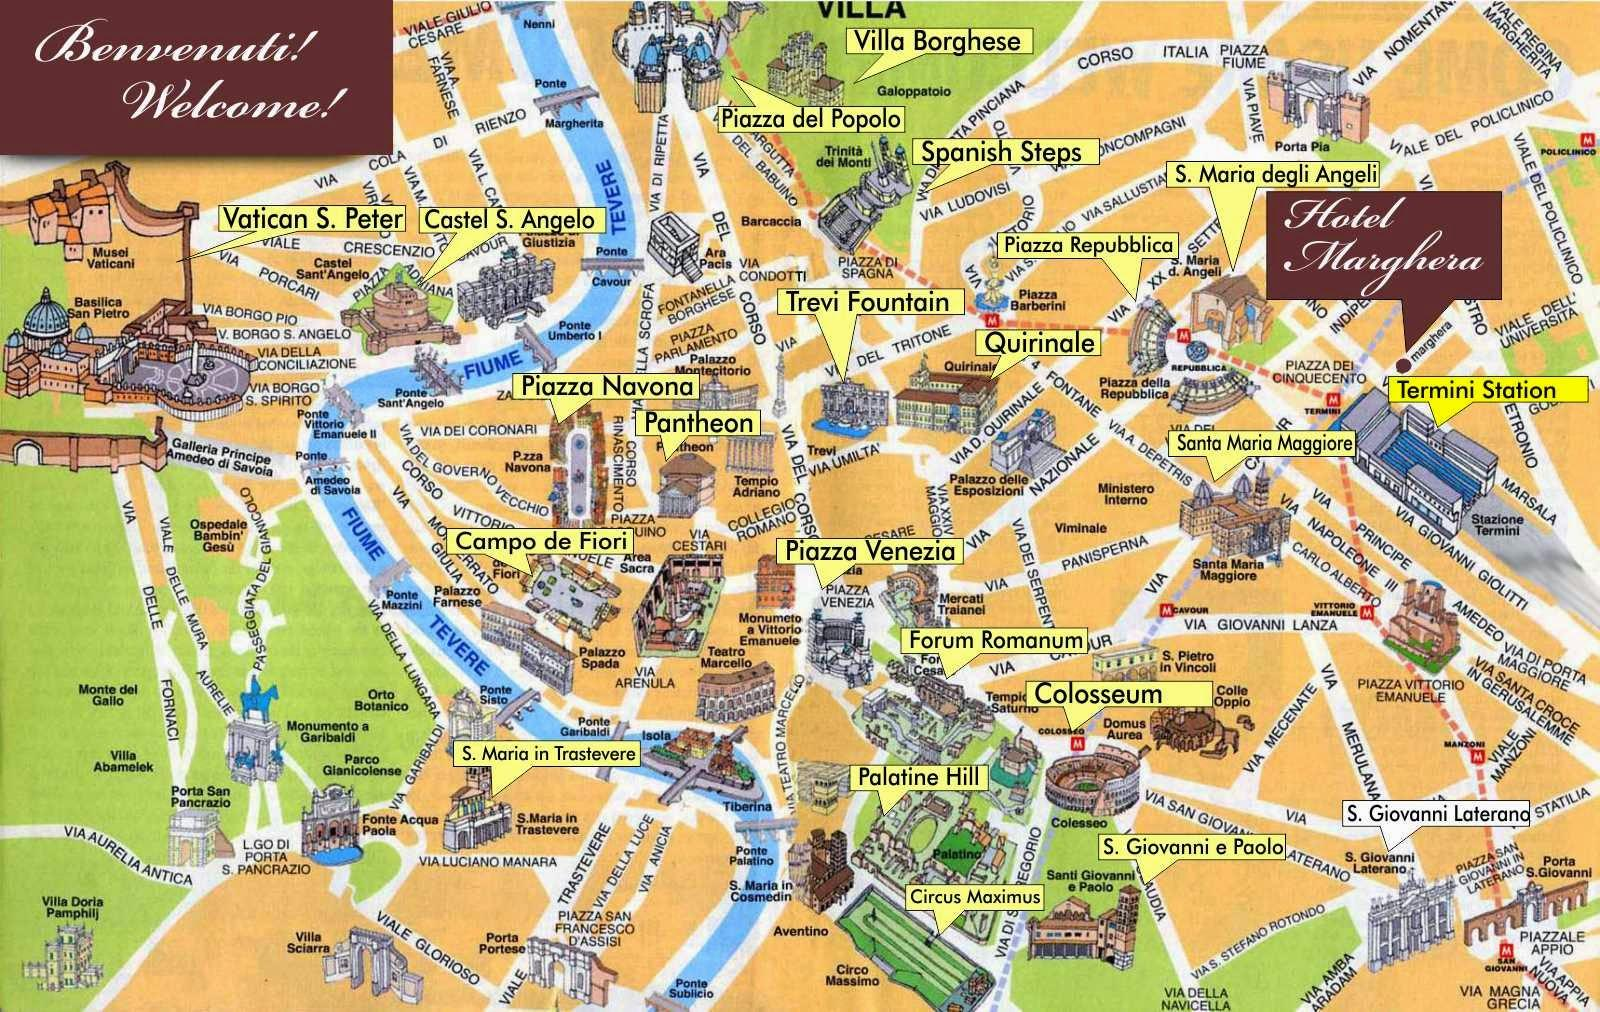 Rome downtown map - Map of downtown Rome Italy (Lazio - Italy) on